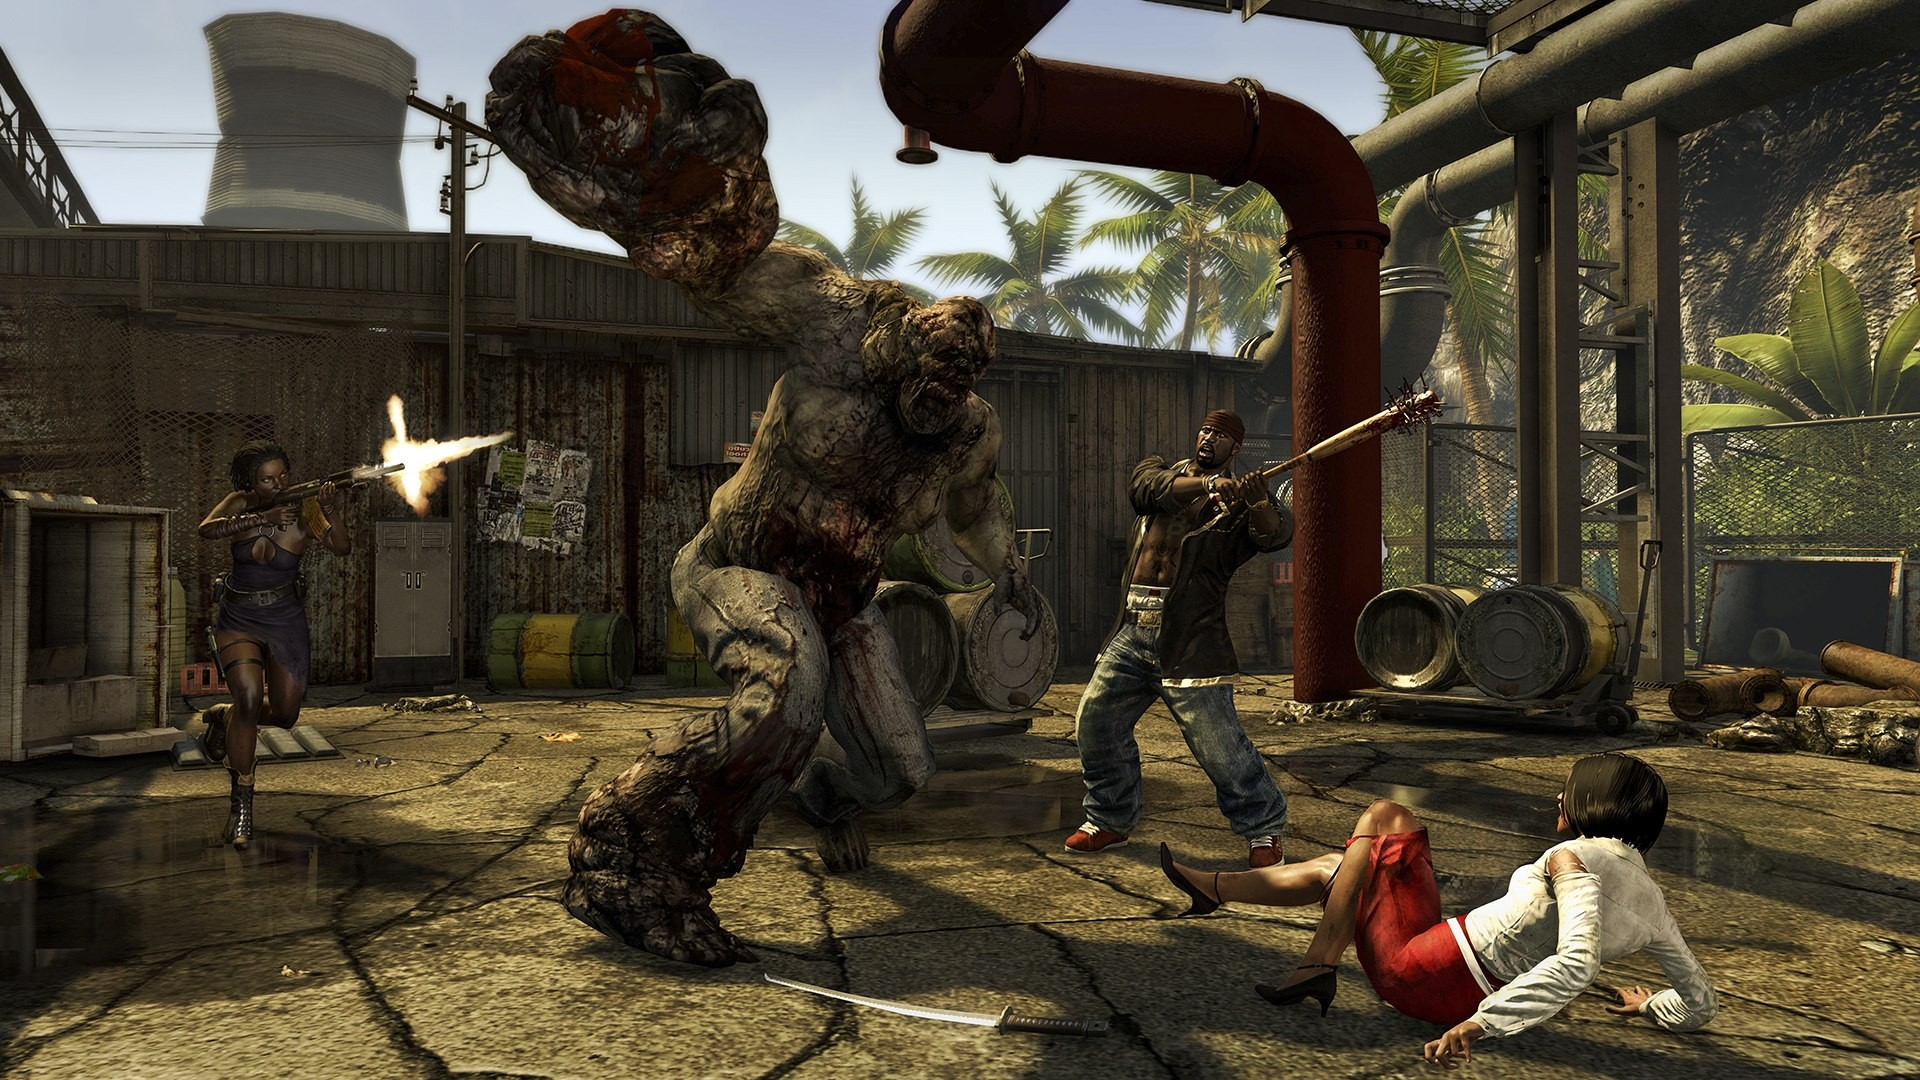 Dead island riptide full hd wallpaper and background image video game dead island riptide wallpaper voltagebd Choice Image